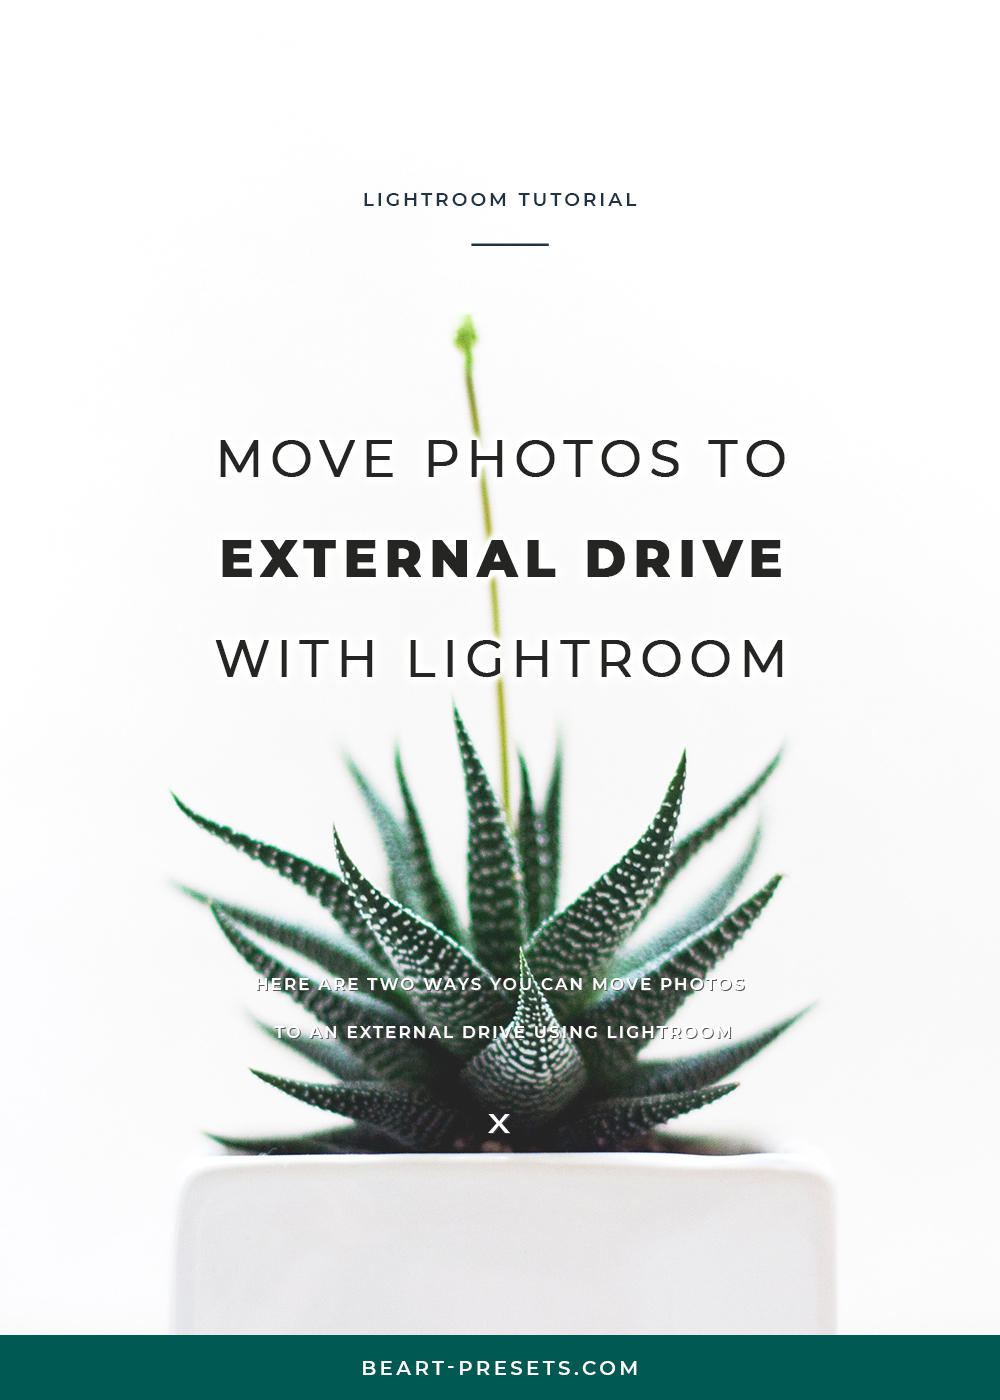 MOVE PHOTOS TO EXTERNAL DRIVE with LIGHTROOM